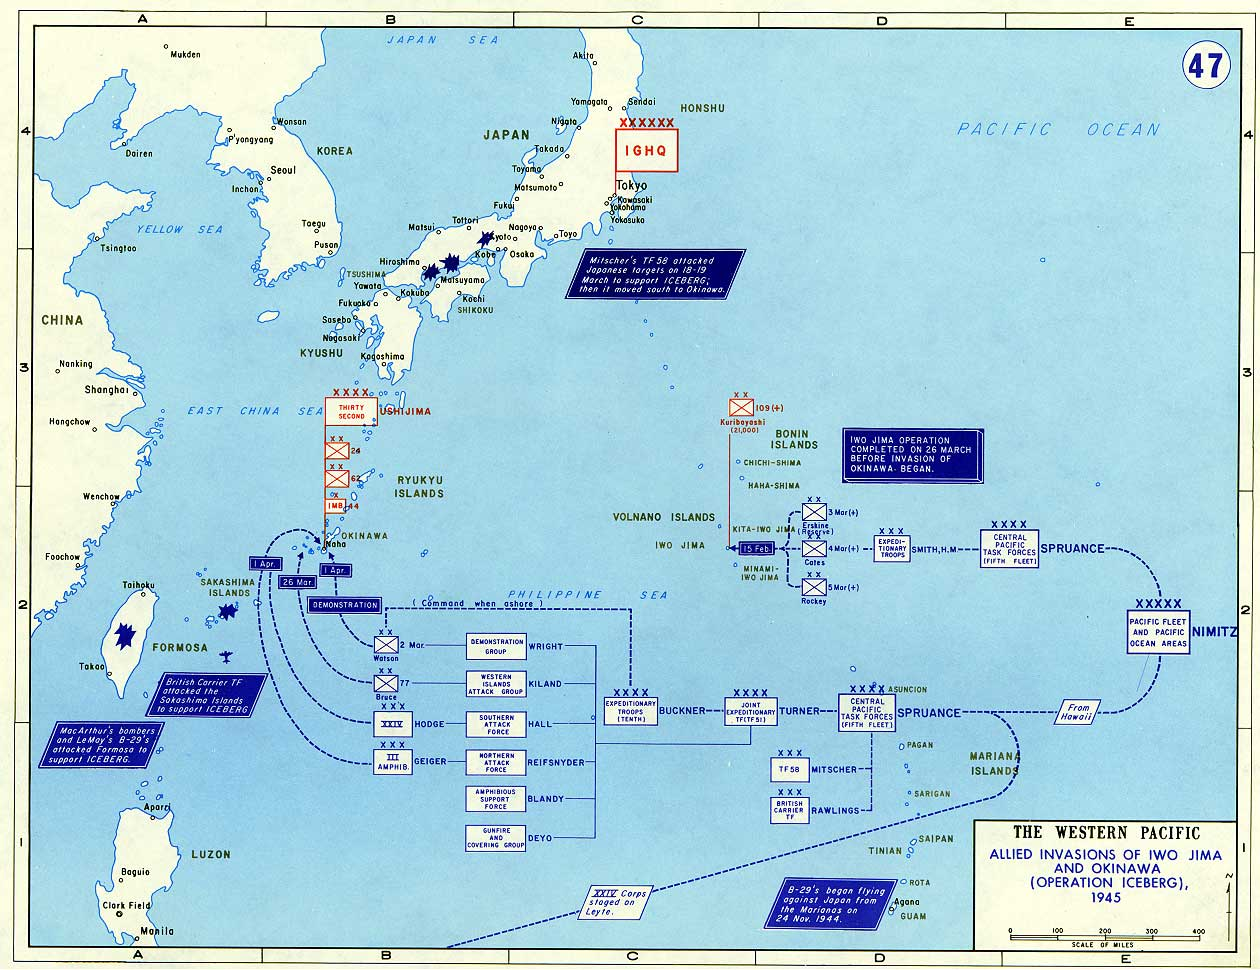 battle for iwo jima  map - battle for iwo jima  map american history famous historical eventstragedies and triumphs world war